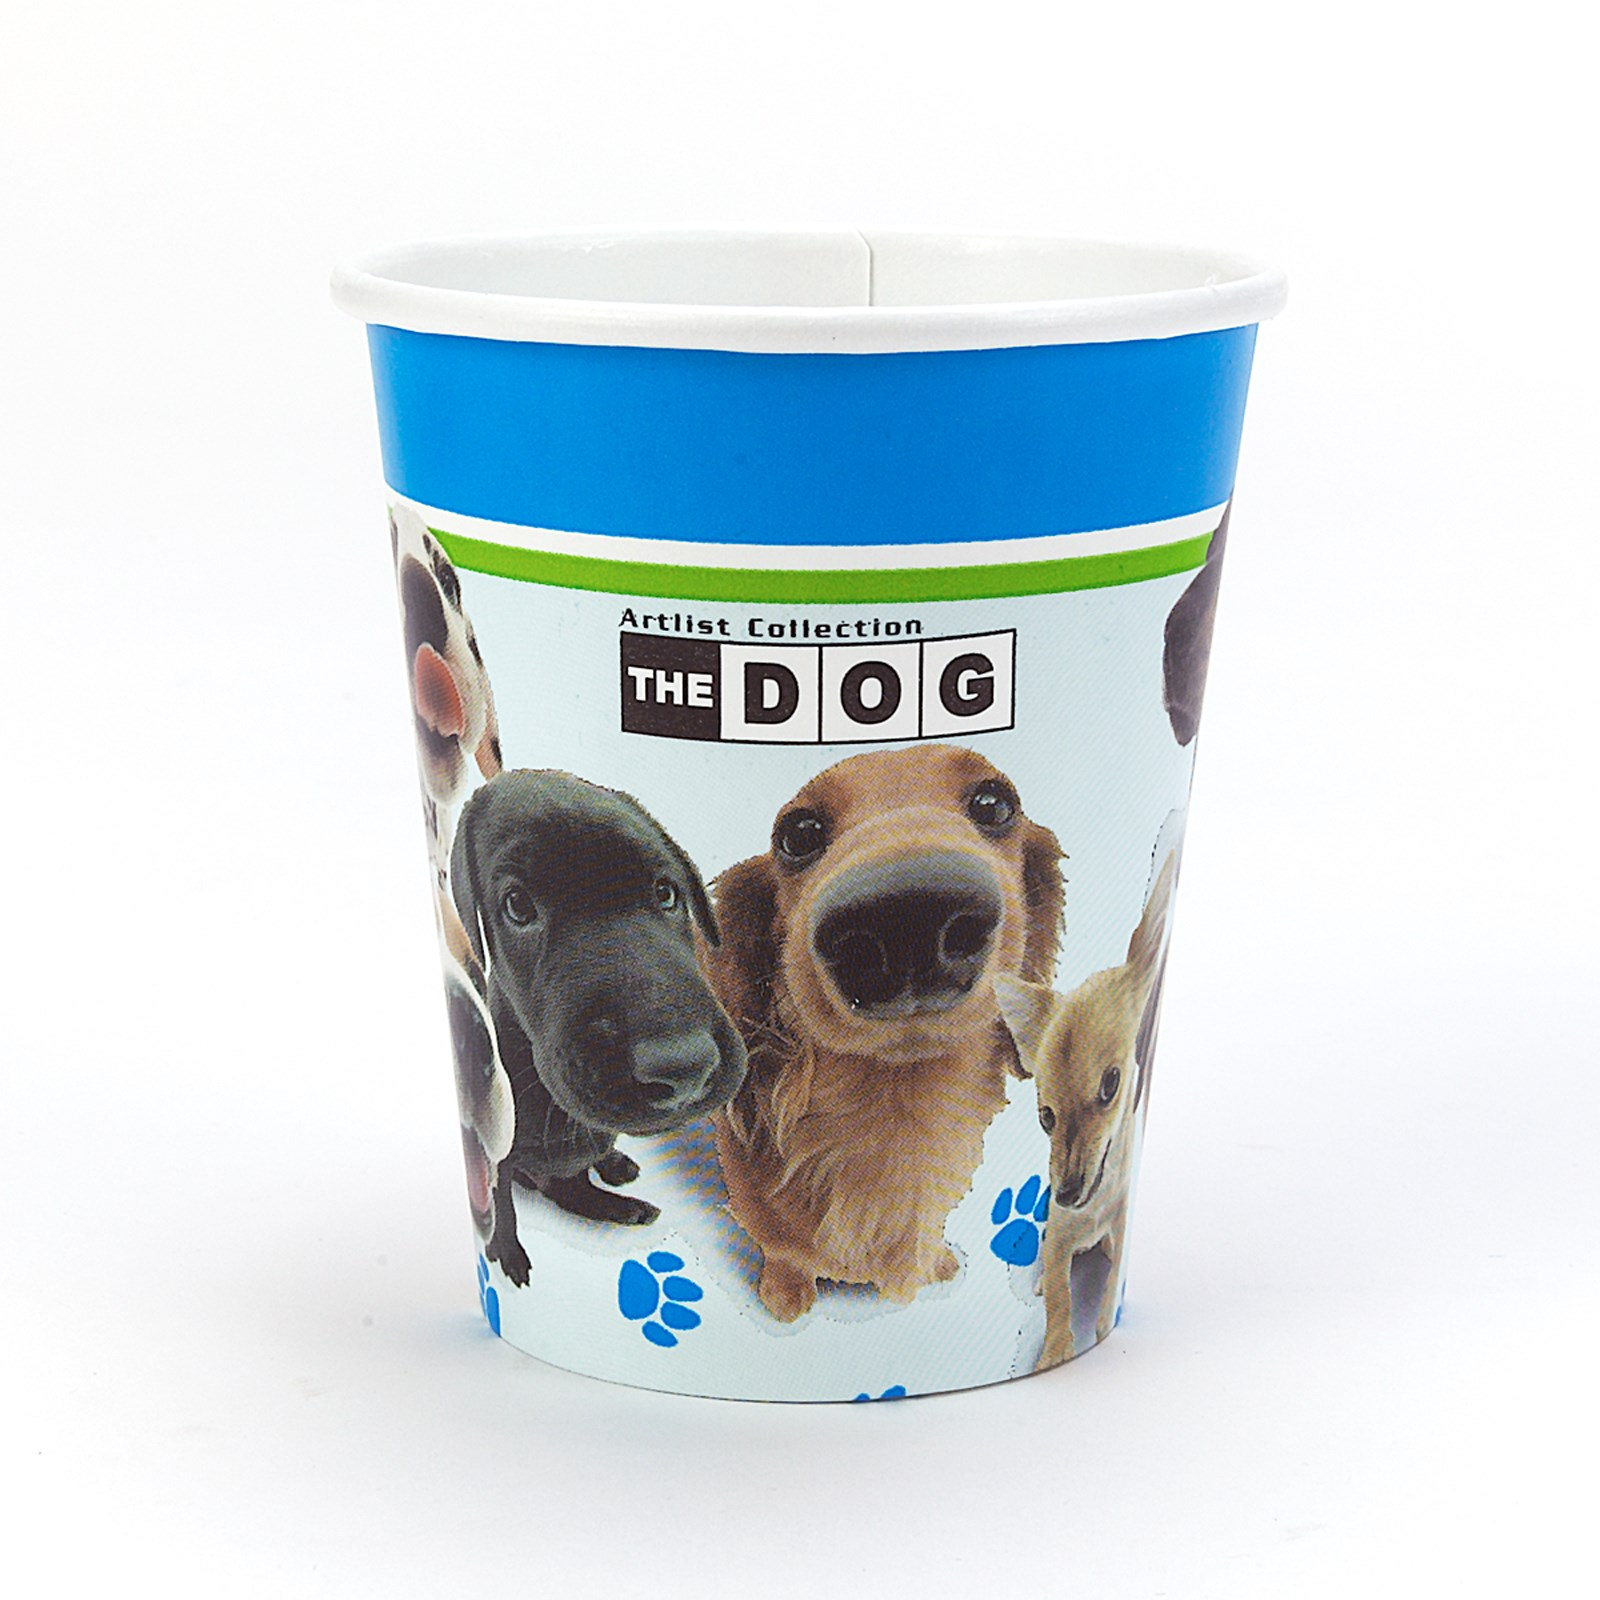 THE DOG 9 oz. Cups